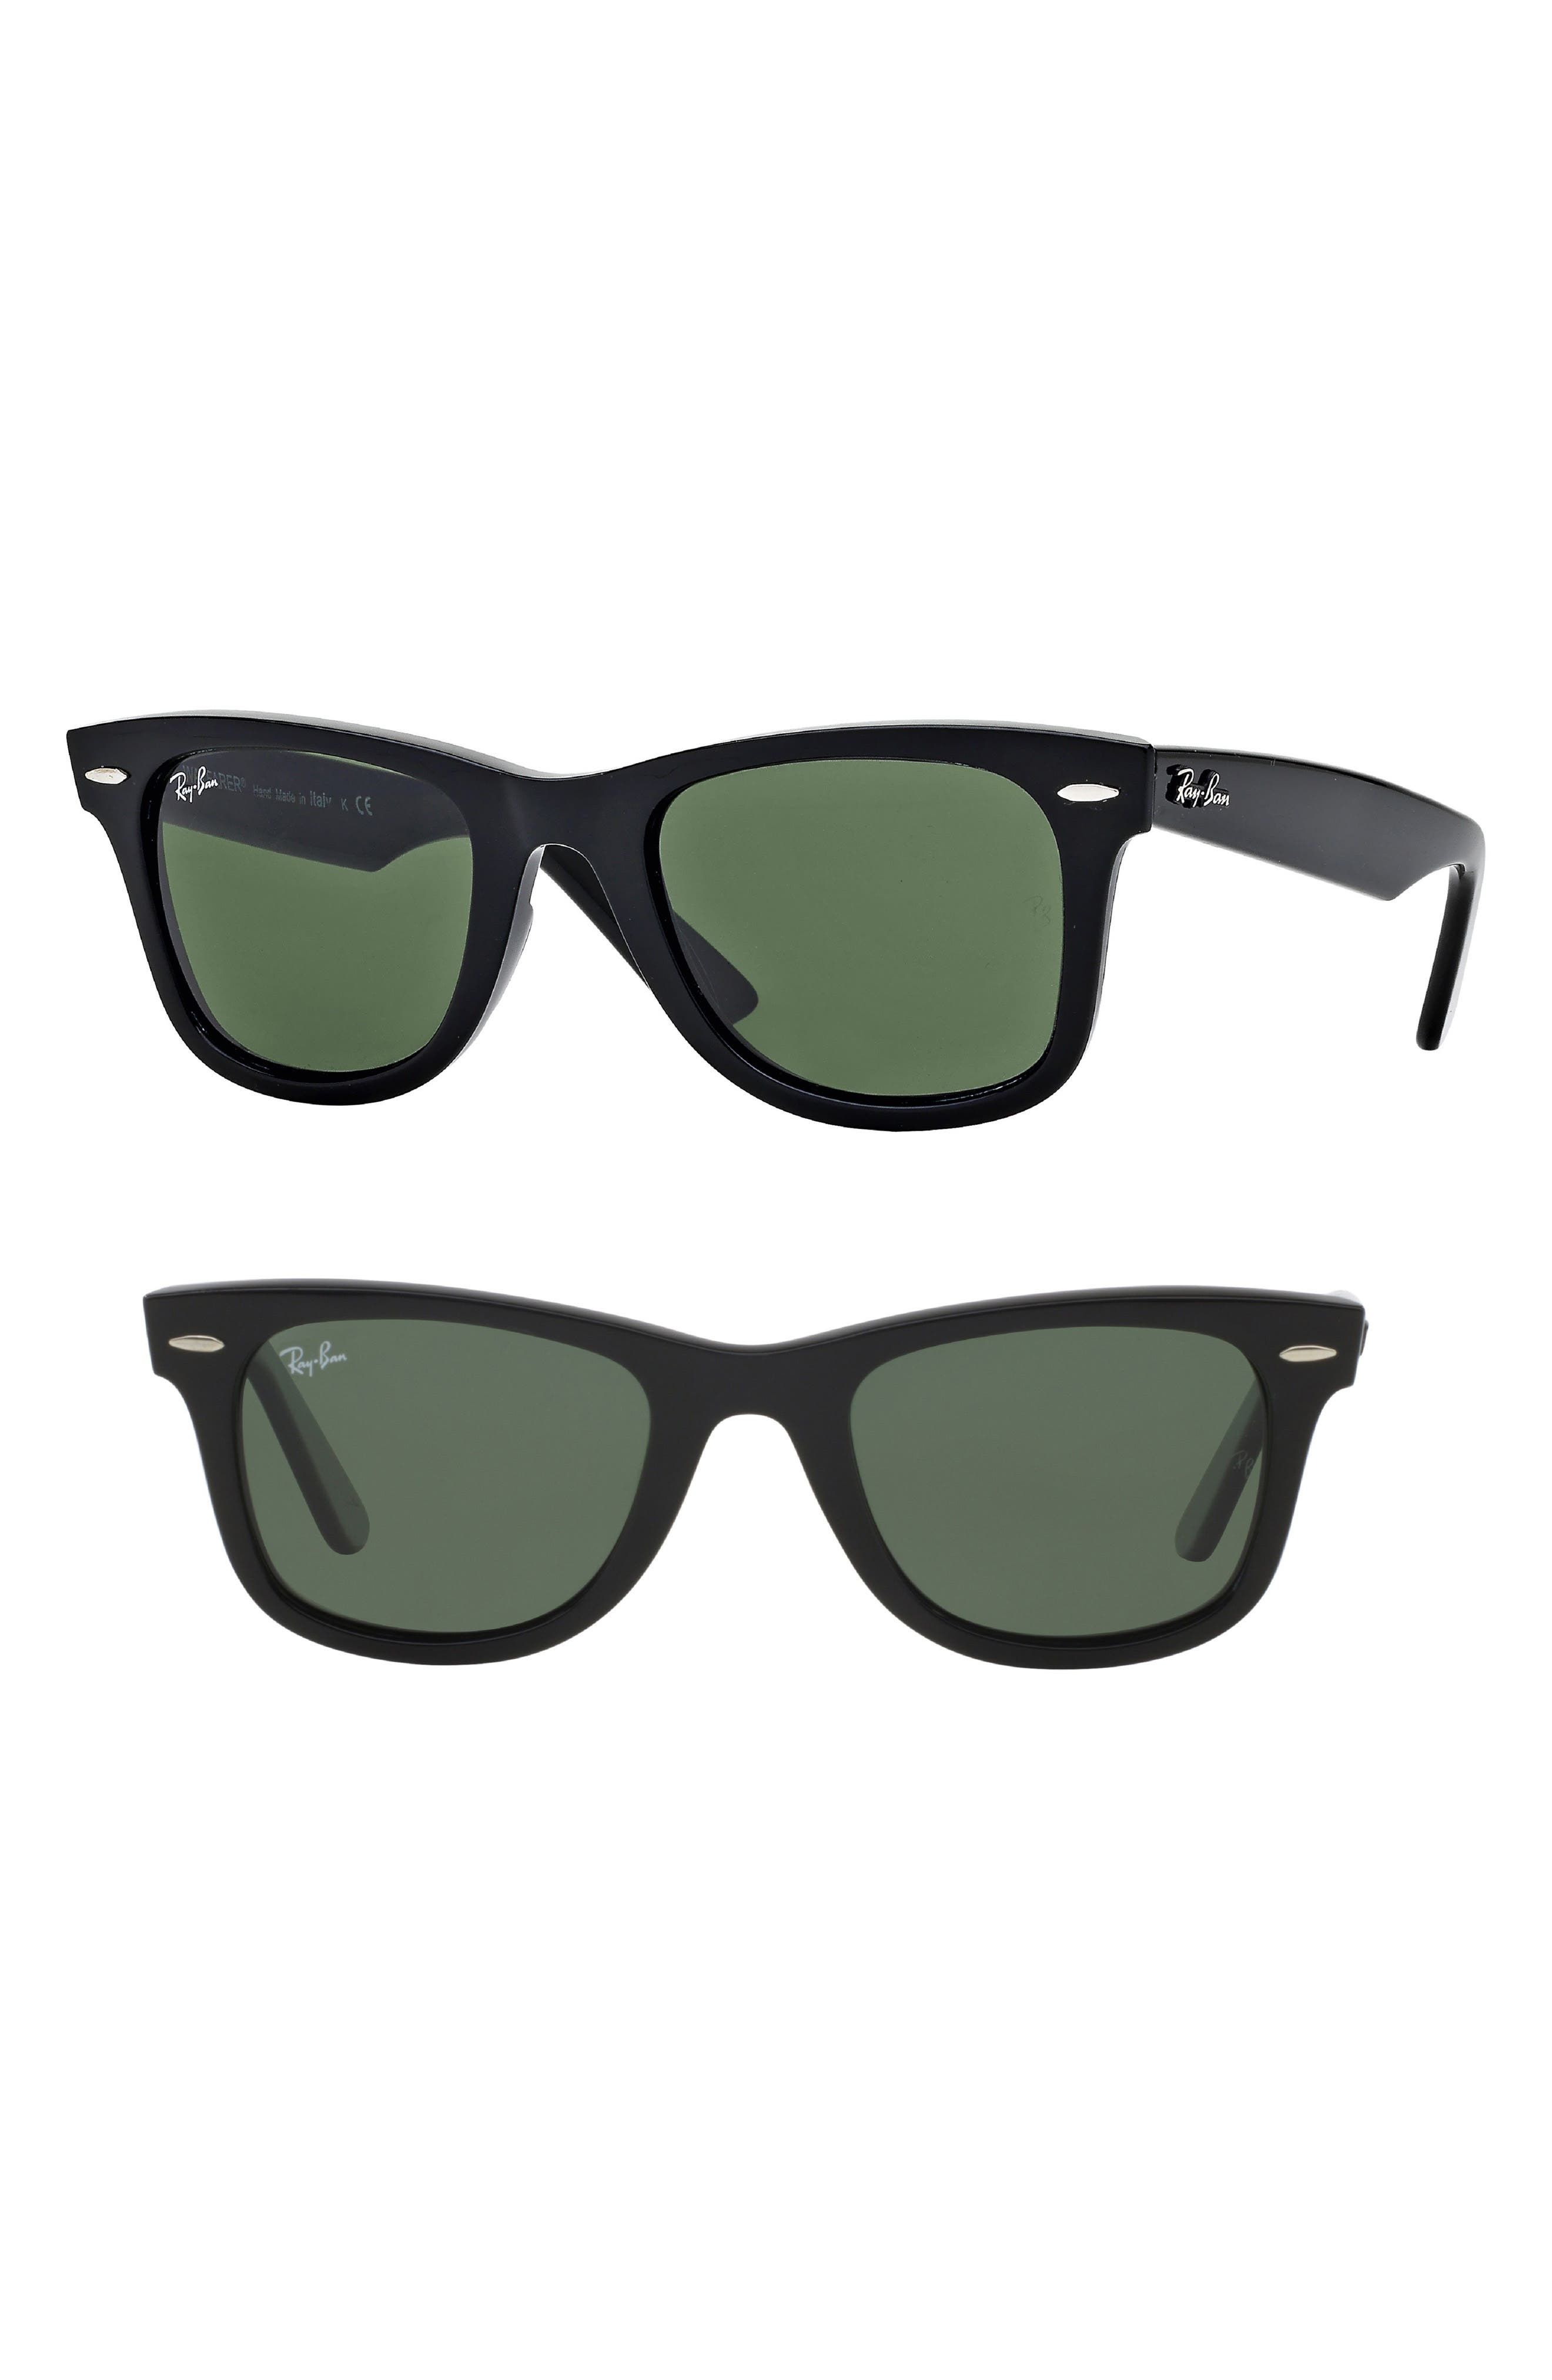 Large Classic Wayfarer 54mm Sunglasses,                             Alternate thumbnail 2, color,                             001